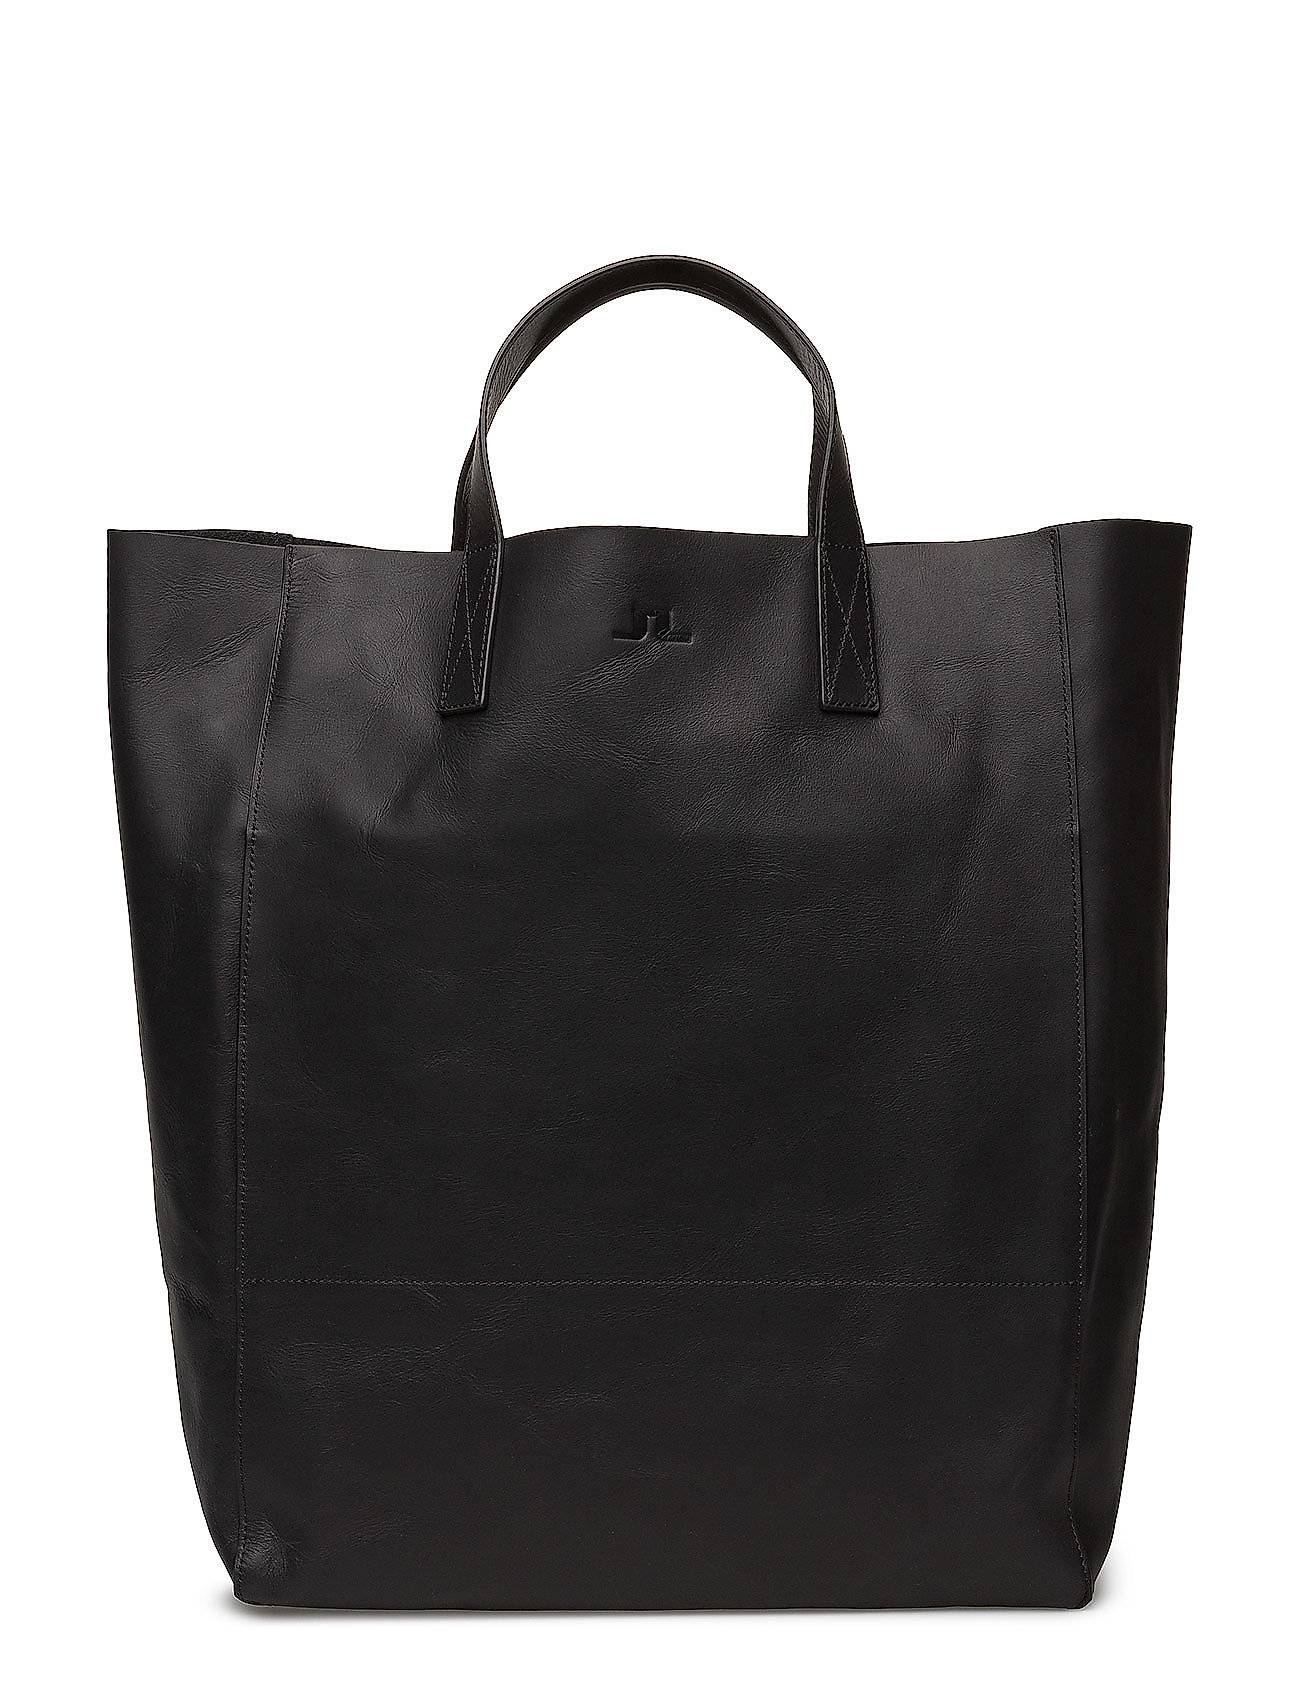 J. Lindeberg Tote Raw Leather